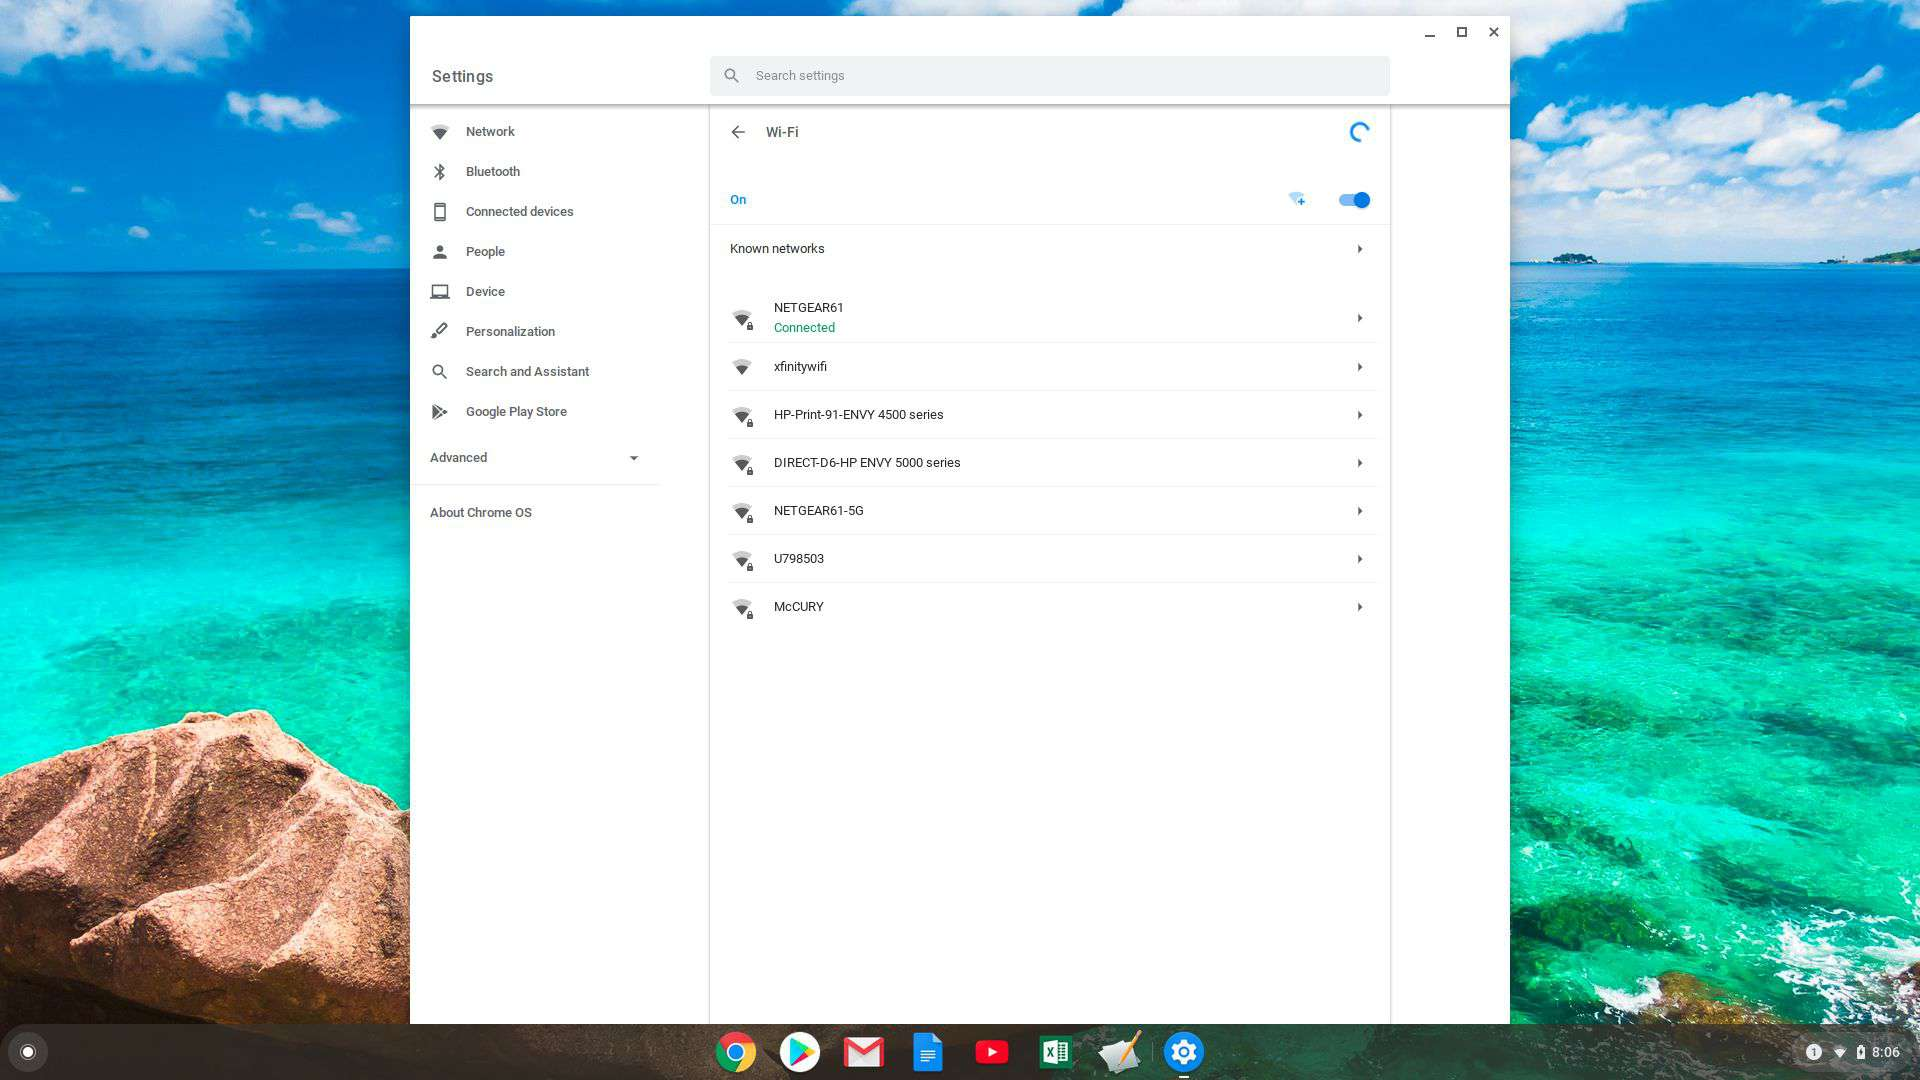 Screenshot of network connected status on Chromebook